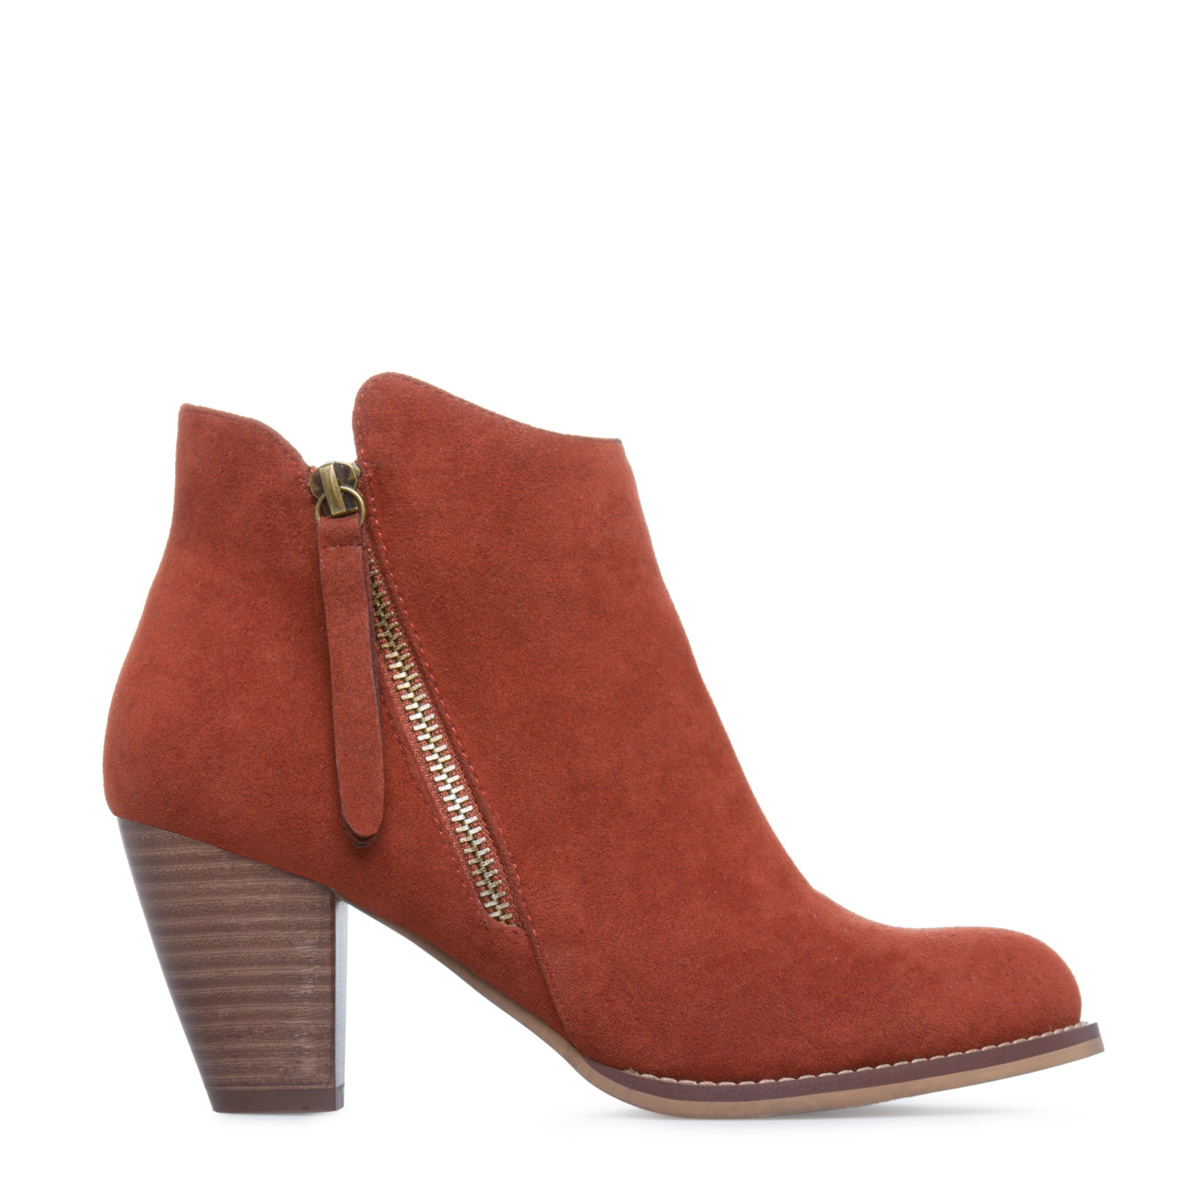 Cheap Wedge Heel Boots - Qu Heel